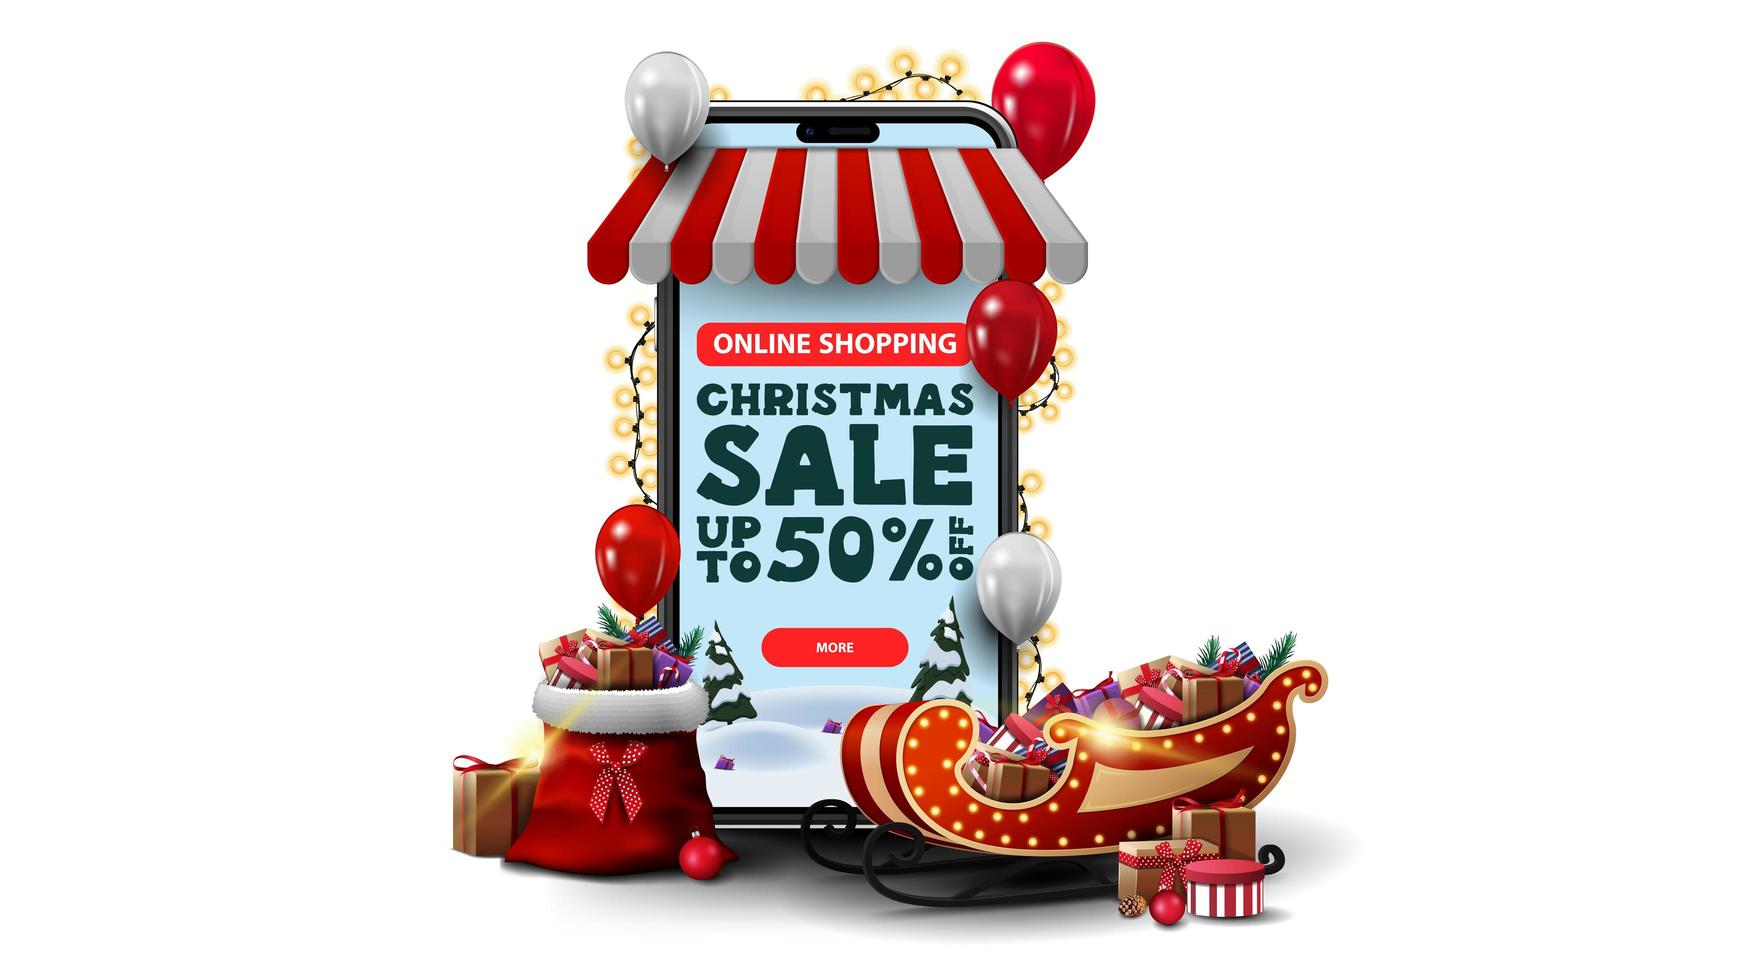 Online shopping, Christmas Sale, up to 50 off. Online shopping with smartphone. Volumetric smartphone wrapped with garland and presents isolated on white background vector